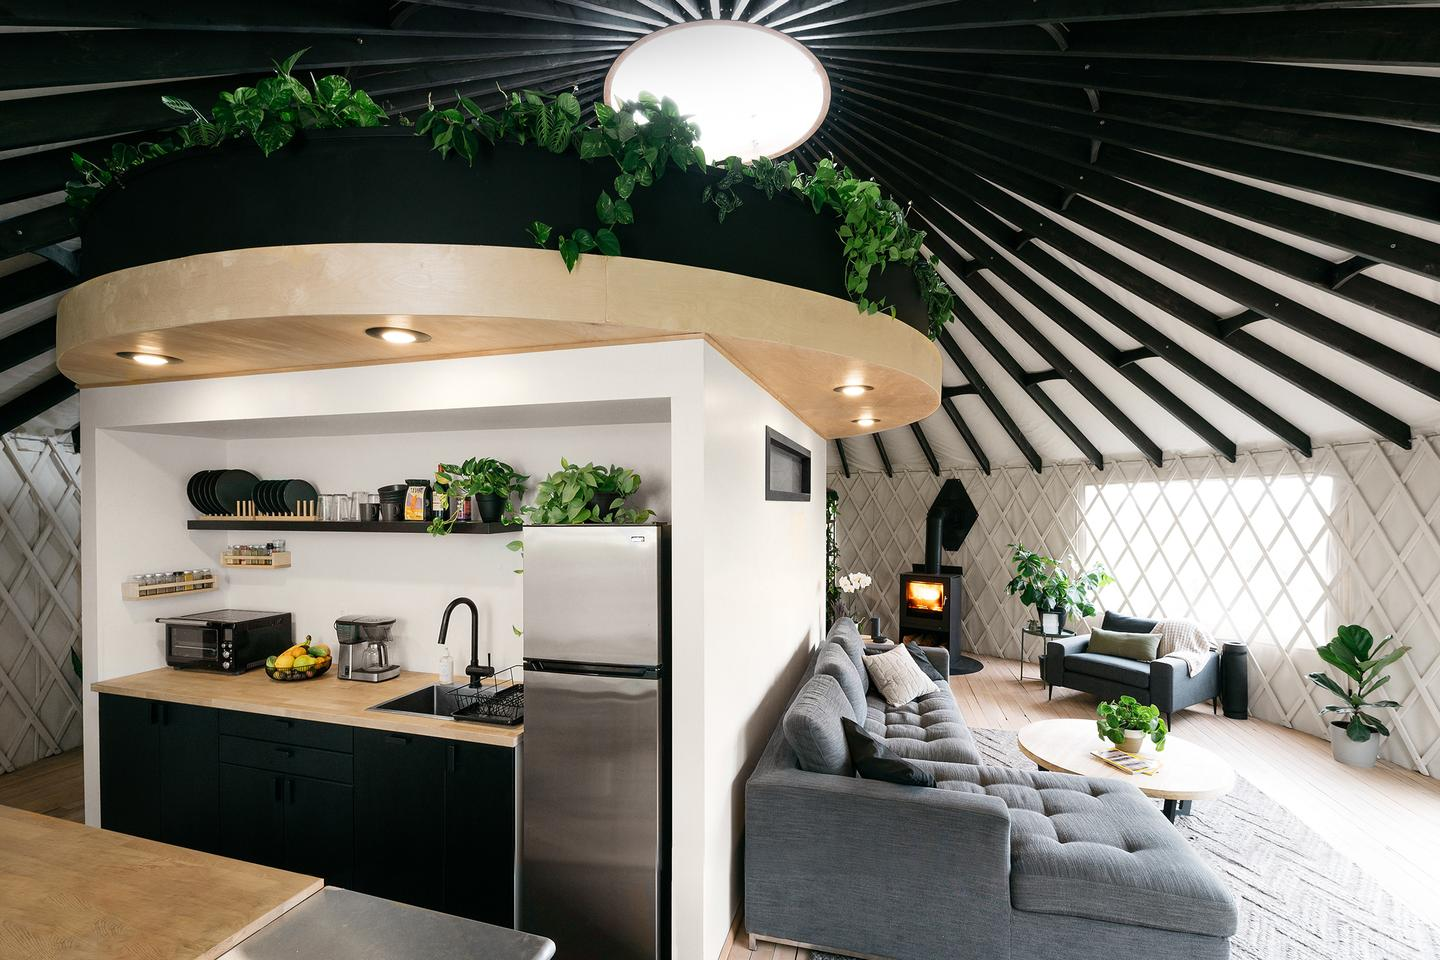 The interior has been personally adapted by the couple to include a central core unit that houses the home's modern kitchen